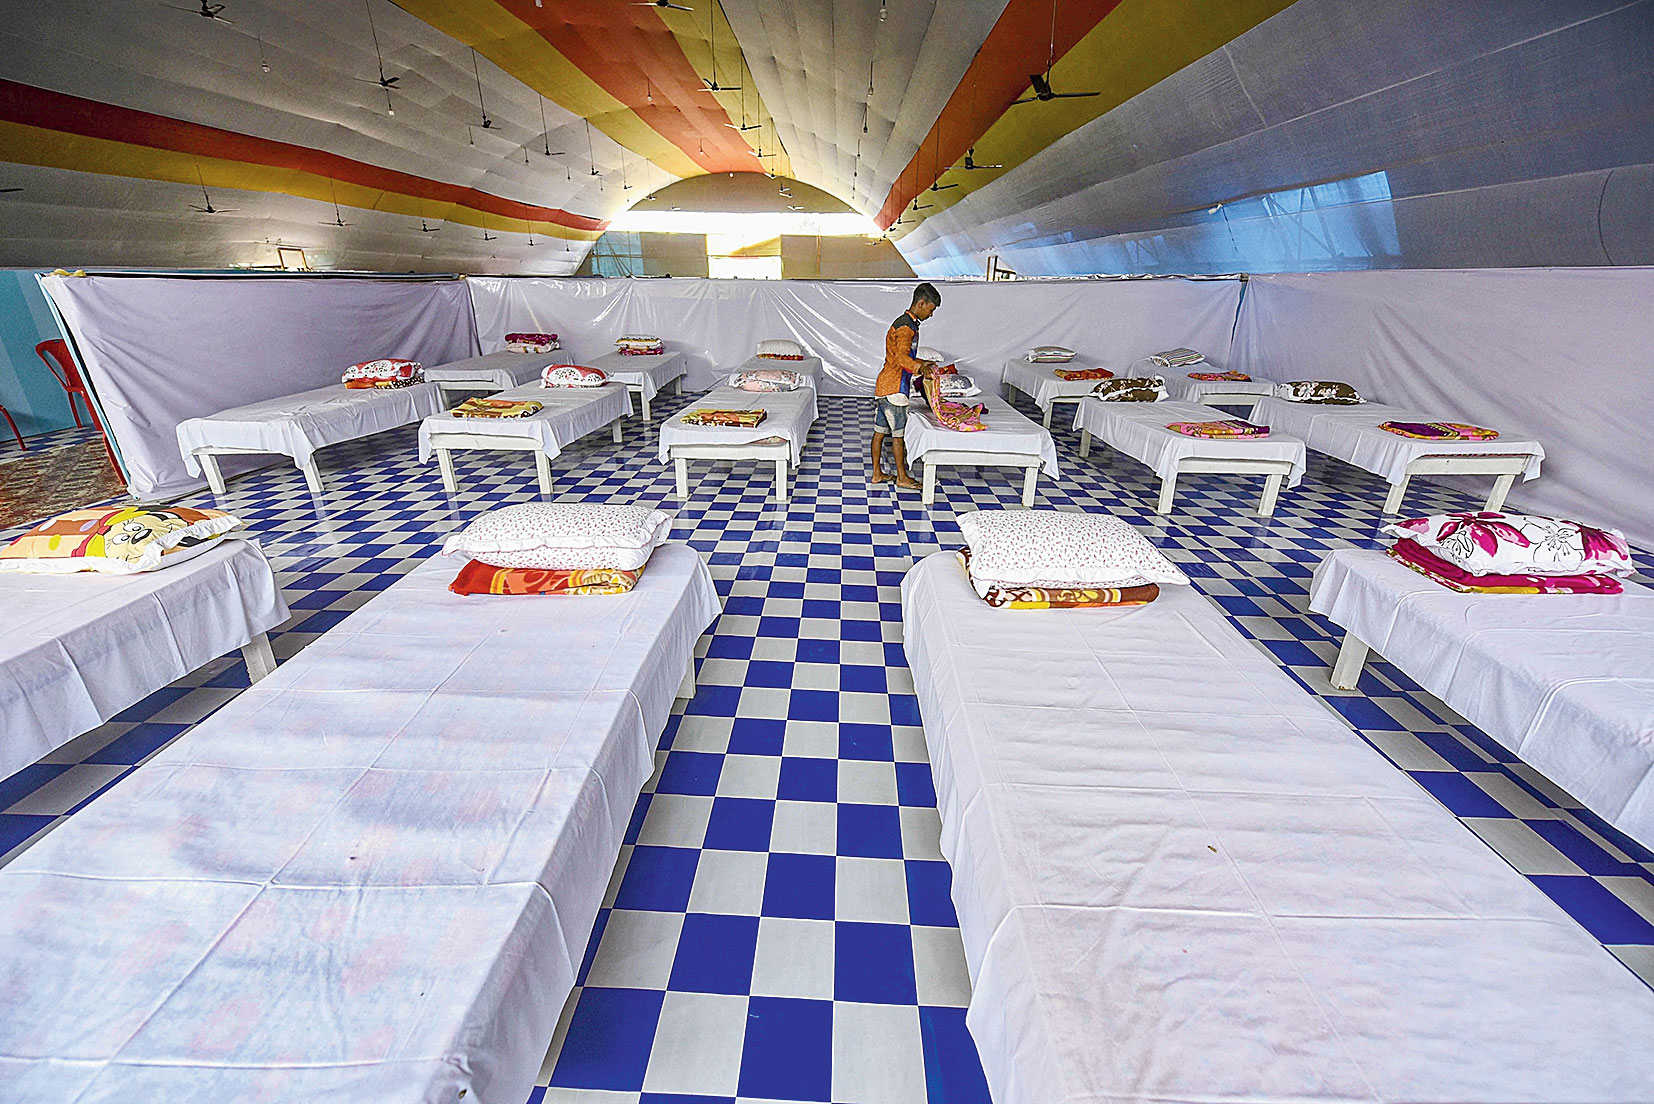 A worker prepares beds at the quarantine centre at Sarusajai stadium in Guwahati on April 15.